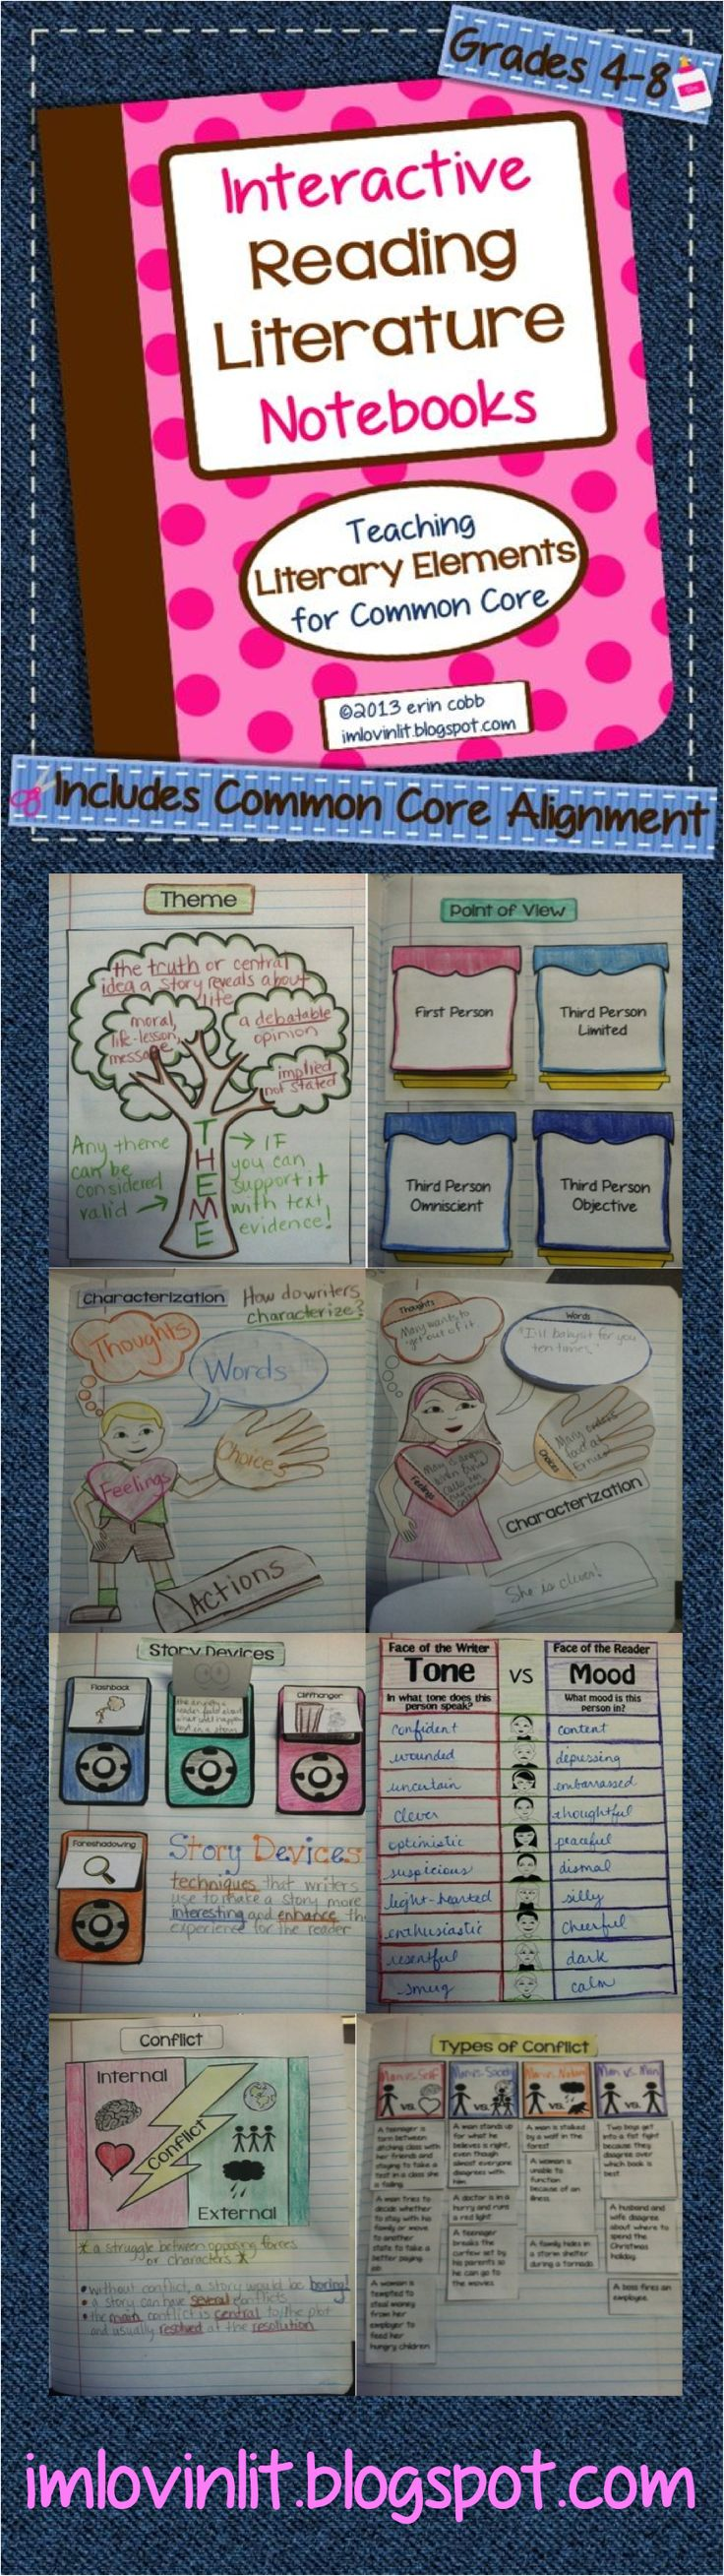 Interactive Reading Literature Notebooks ~ Teaching Literary Elements with Common Core Alignment. The creator focuses on grades 6, 7, 8 but I think it can be easily adapted for high school.